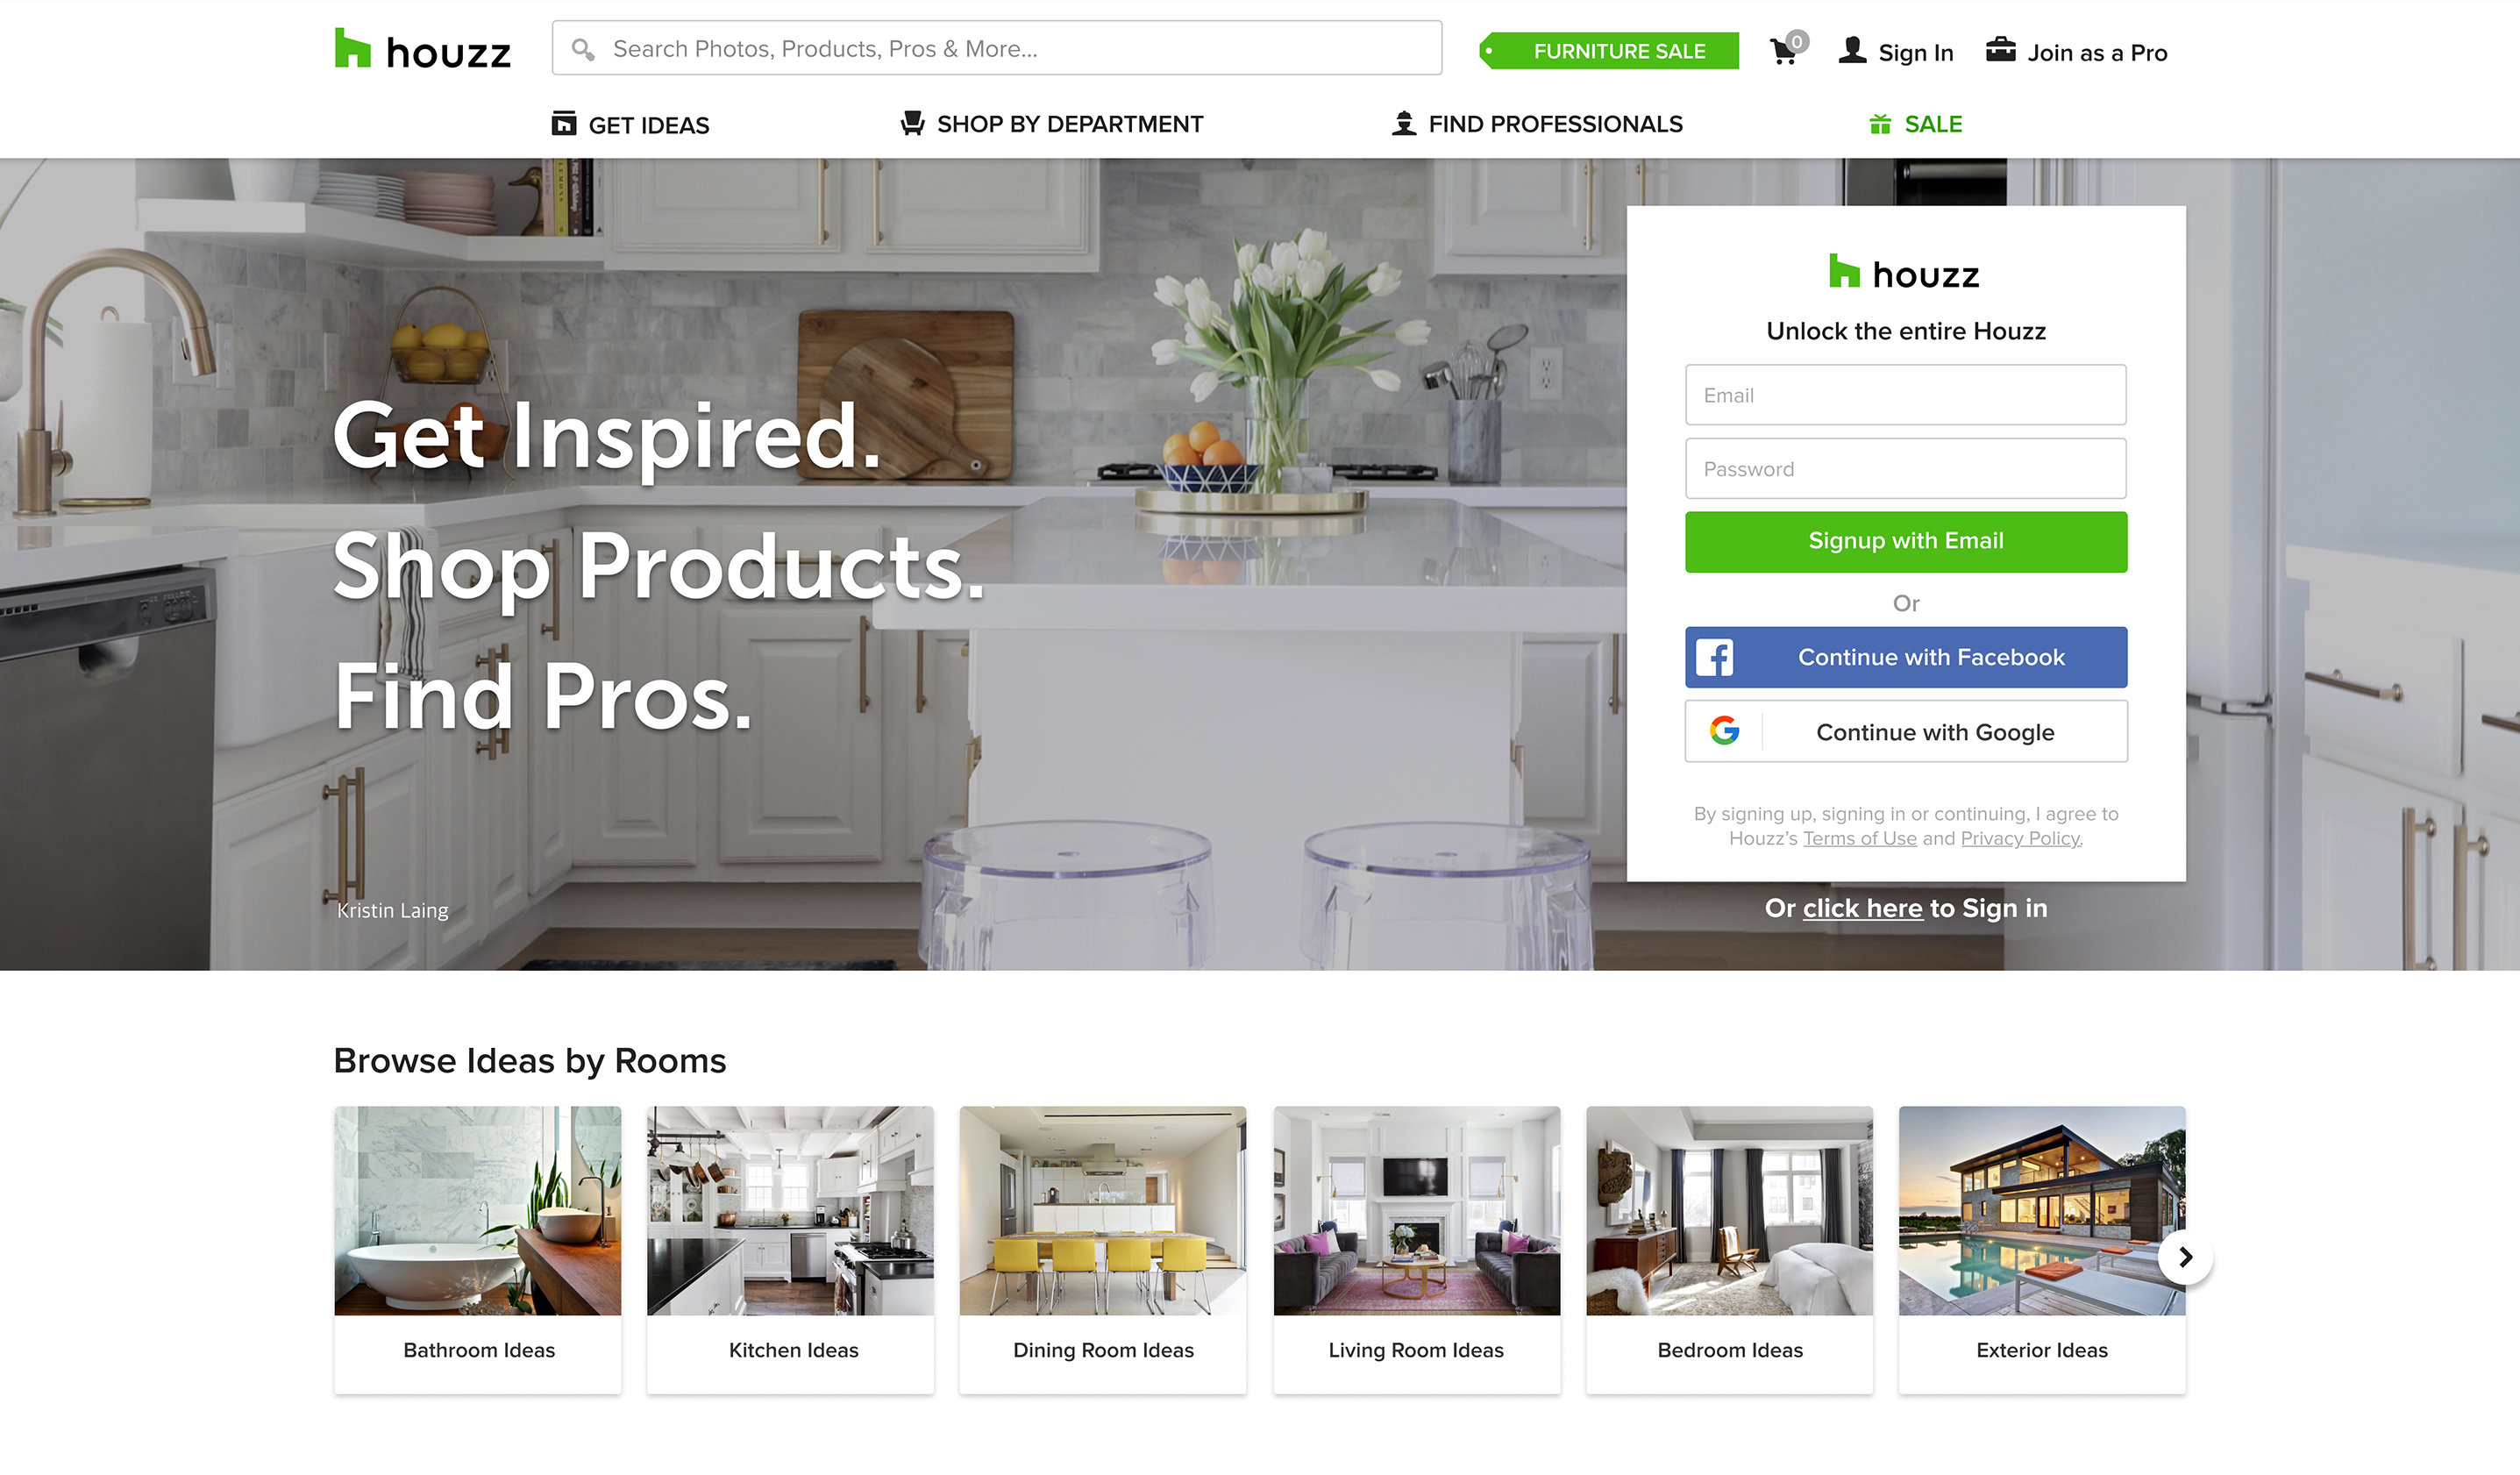 houzz press media resources and press releases